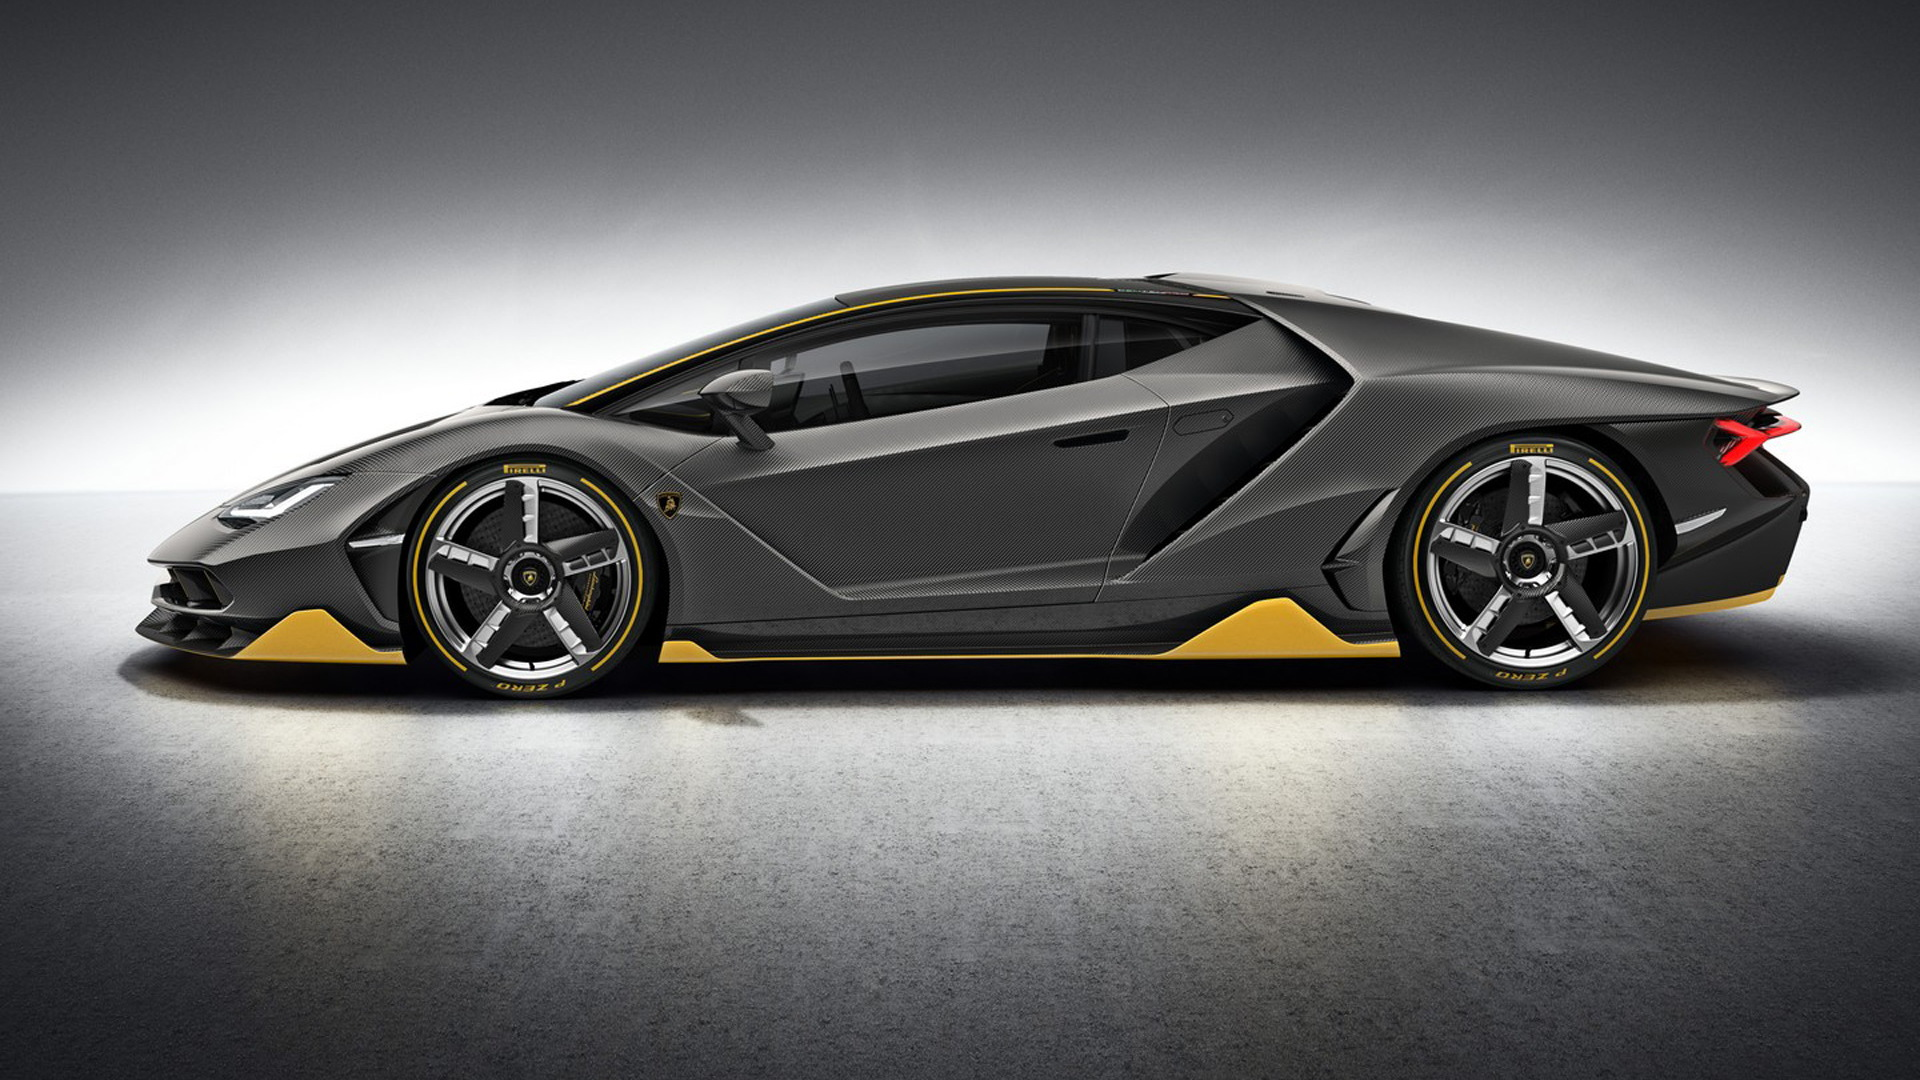 How The Lamborghini Centenario Lp 770 4 Differs From The Aventador